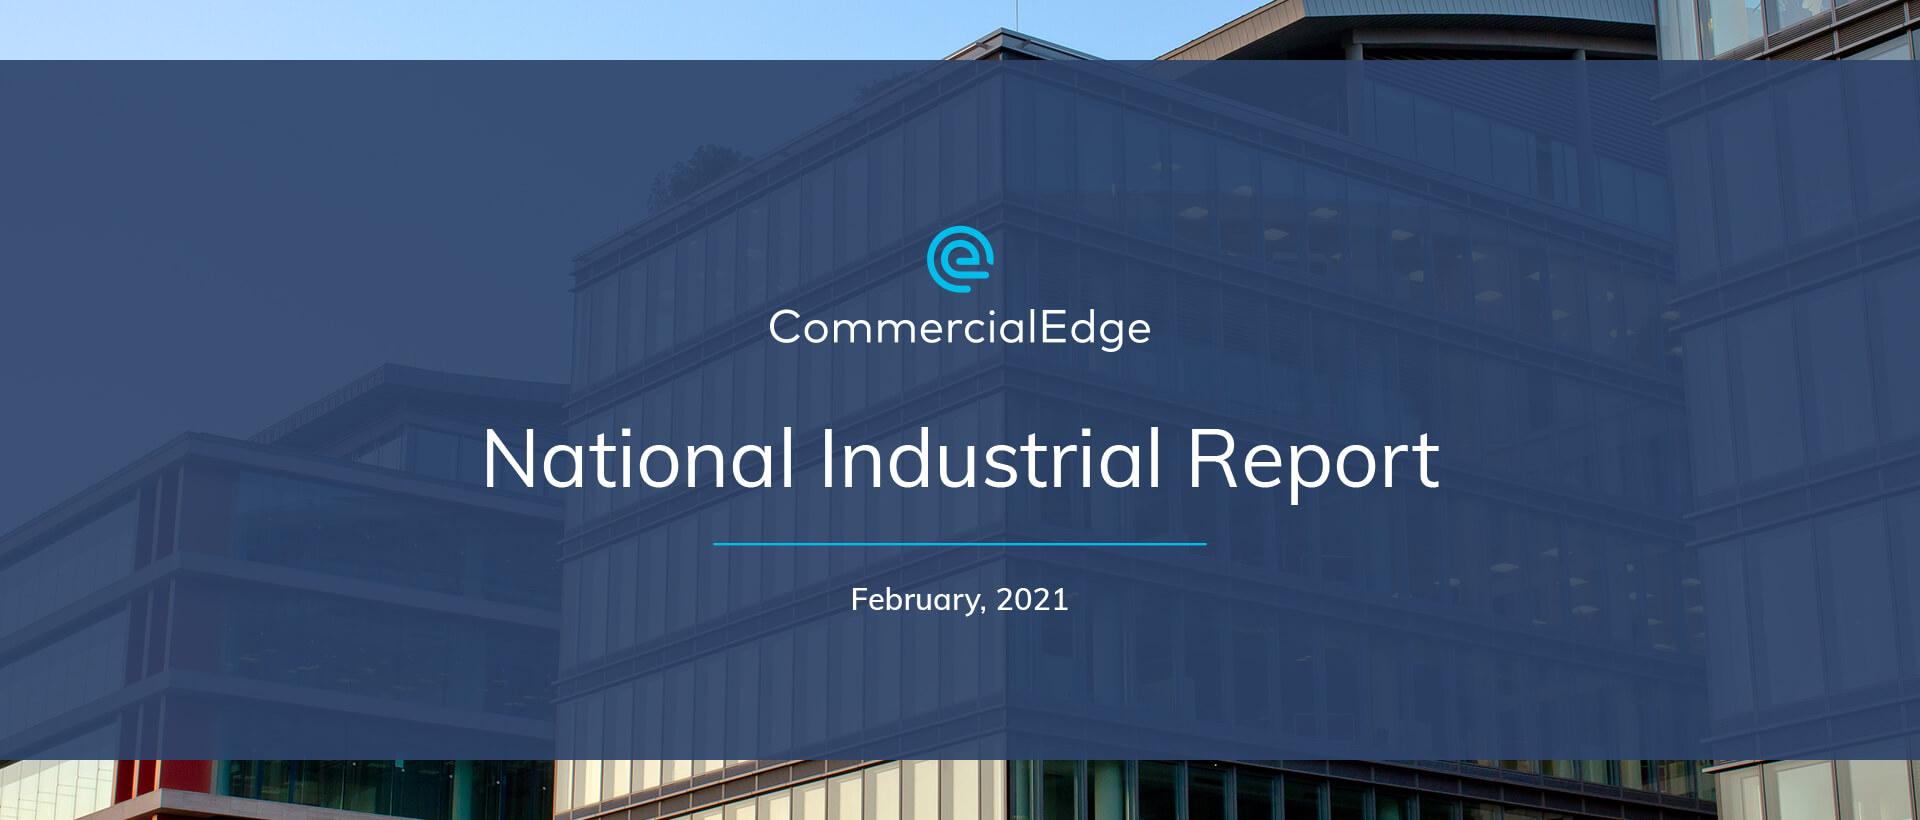 CommercialEdge National Industrial Report February 2021